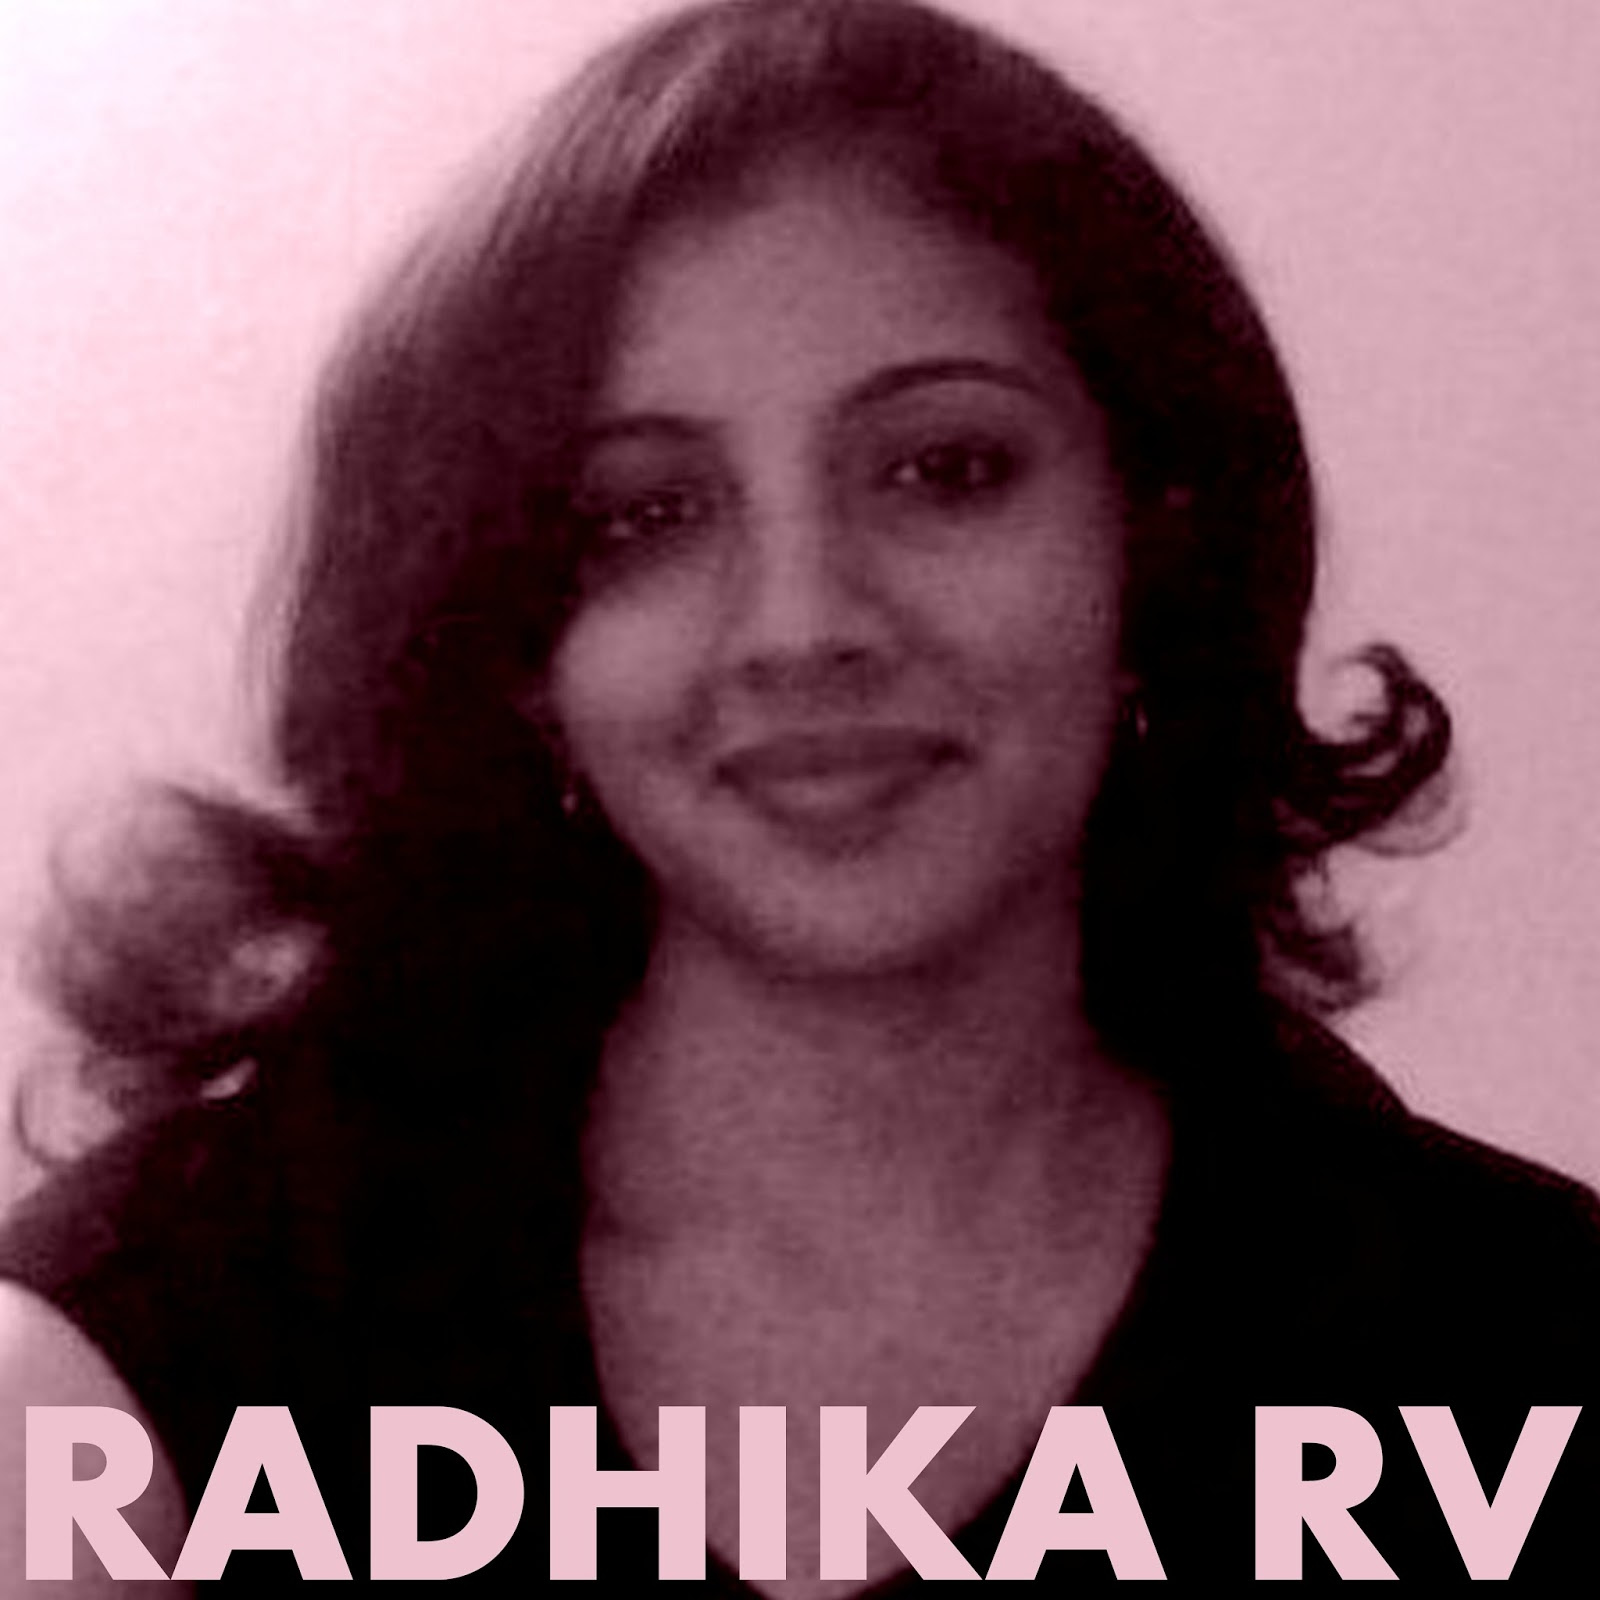 Radhika RV- Opinions